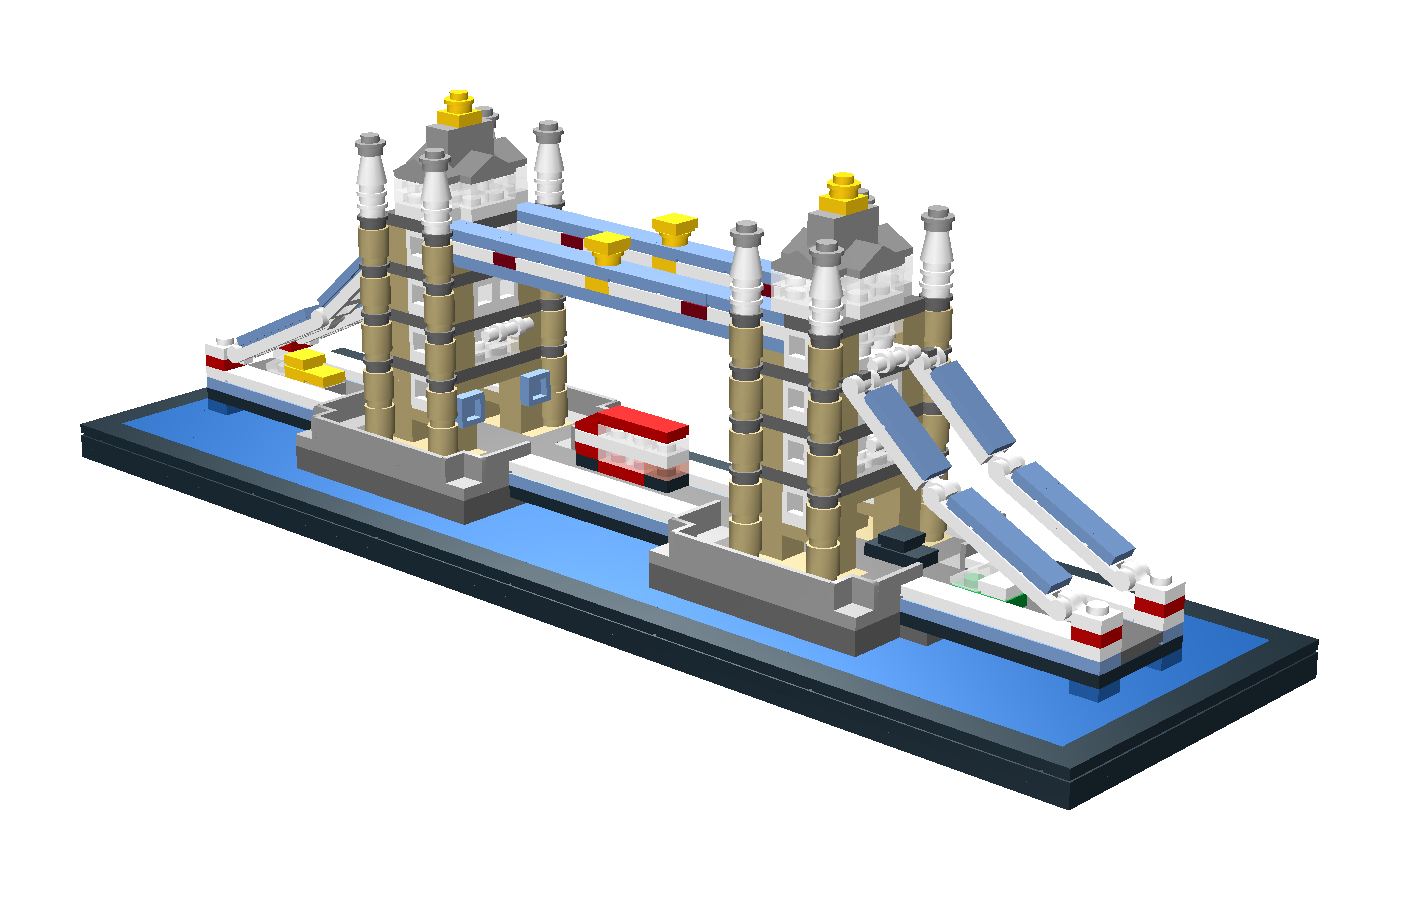 00_jamie_i_shrunk_your_tower_bridge.jpg